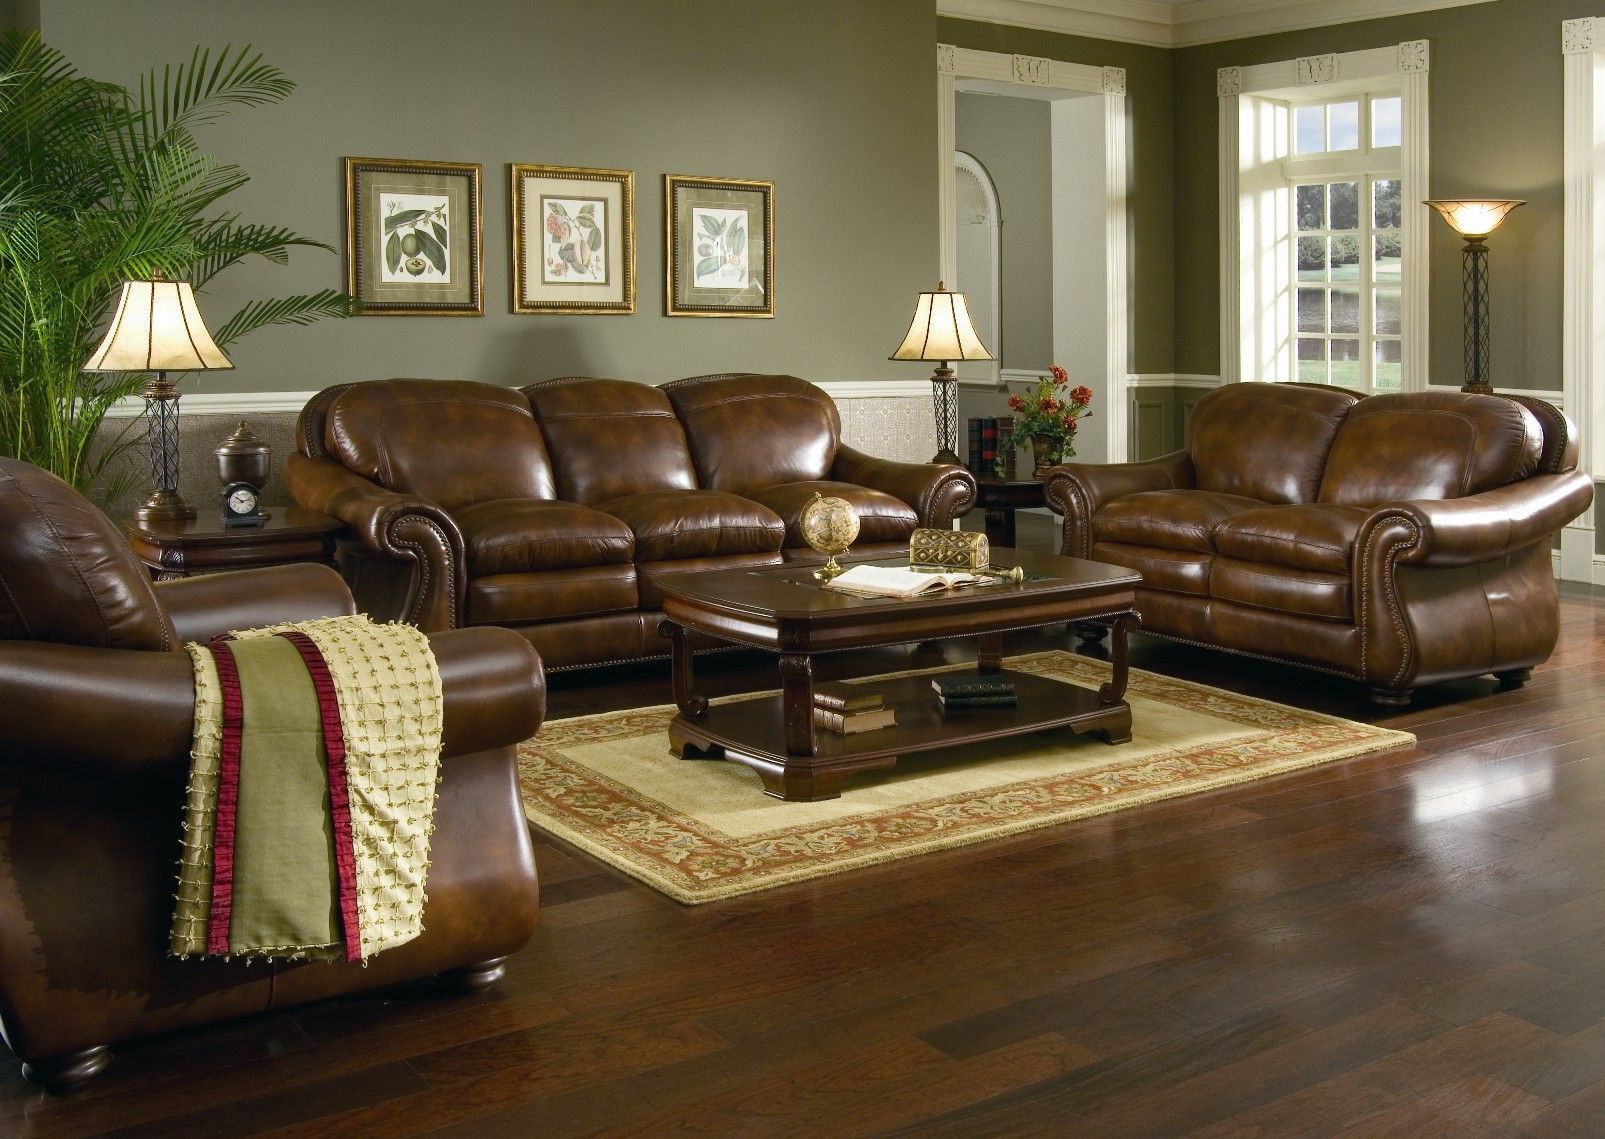 Leather Living Room Chair Part - 20: Paint Ideas Living Room Brown Furniture - Colors Of Living Room Leather  Sofa U2013 Minimalist Home Decor Design Ideas